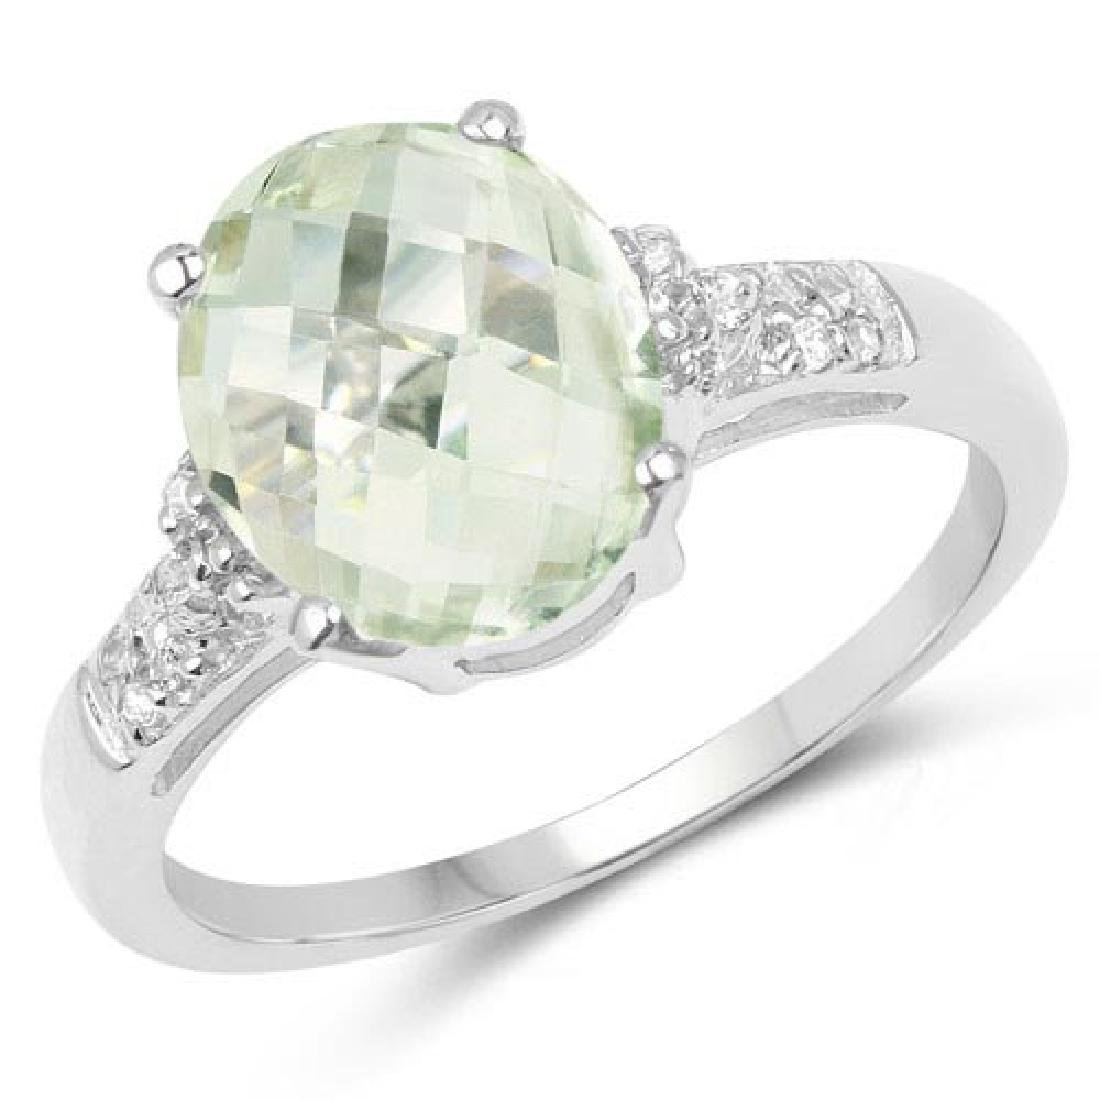 2.61 Carat Genuine Green Amethyst and White Topaz .925